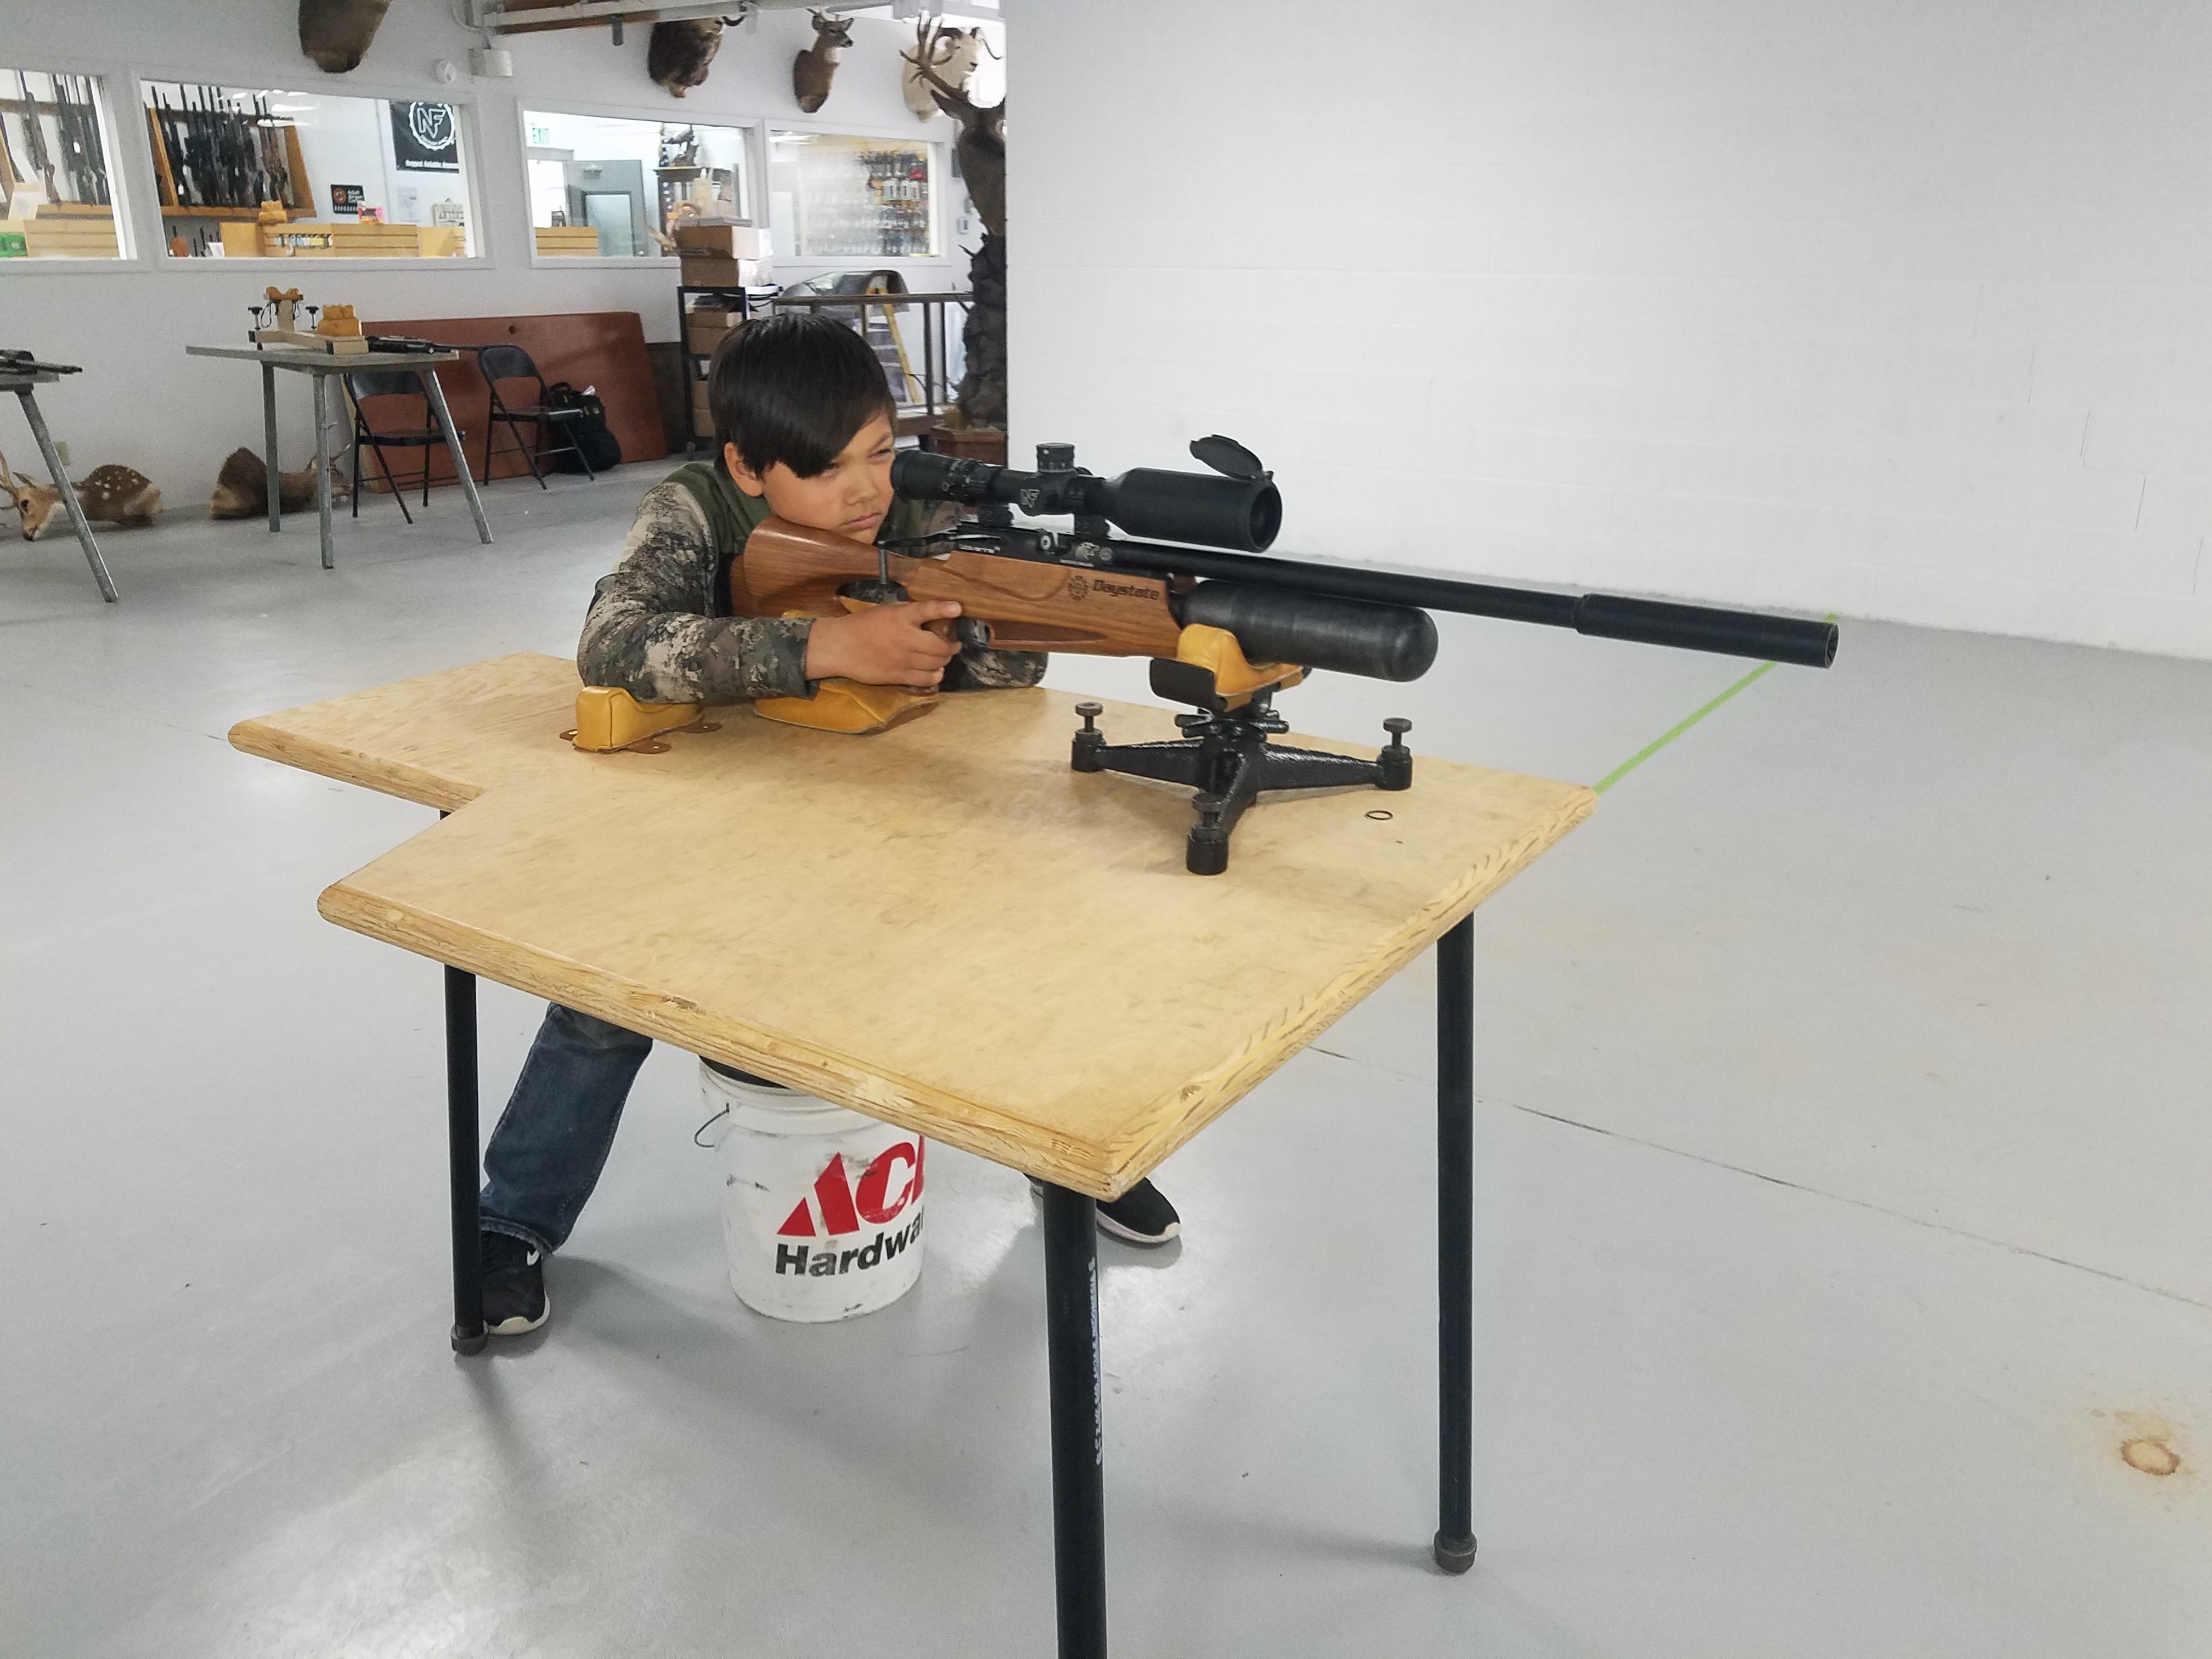 A young shooter is seated at table while he aims an air gun towards a target